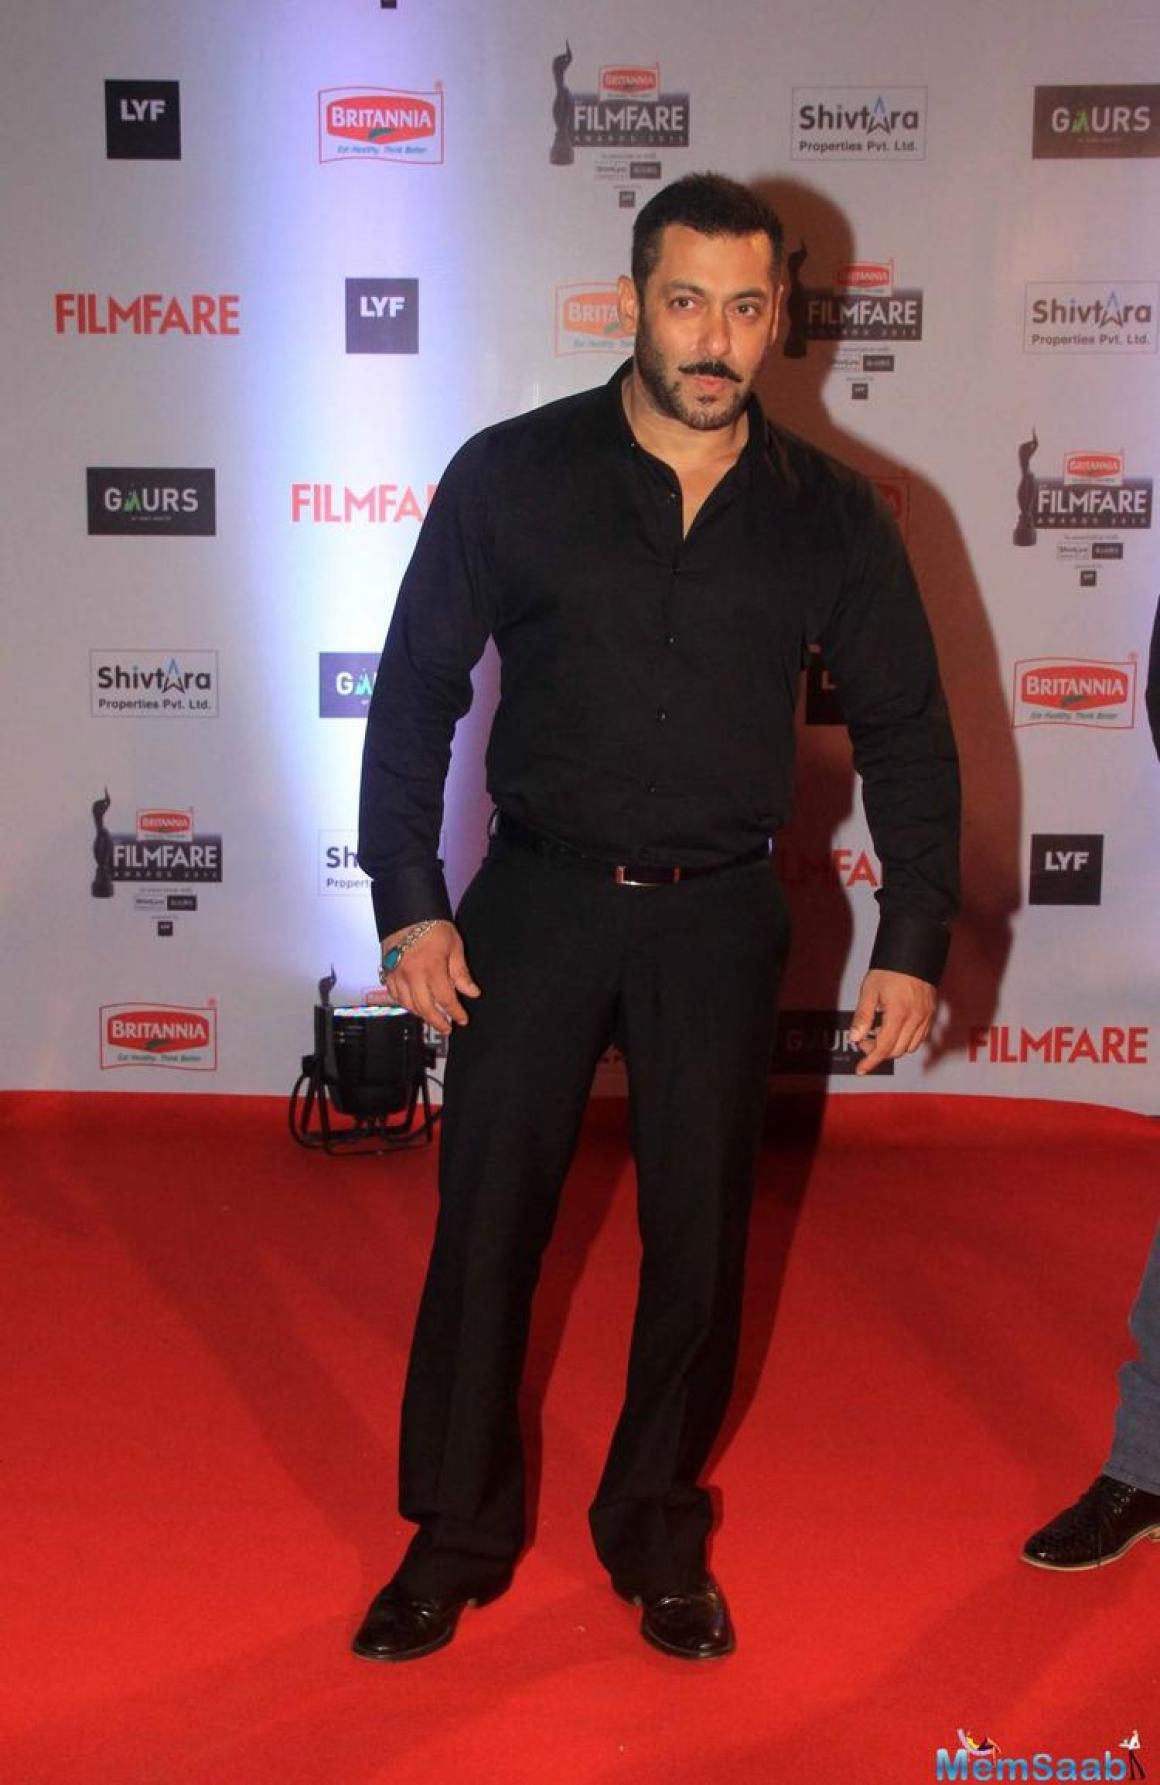 Reportedly, Salman Khan is likely to star in the remake of the Korean film Ode to My Father, which will be directed by Rajkumar Santoshi.